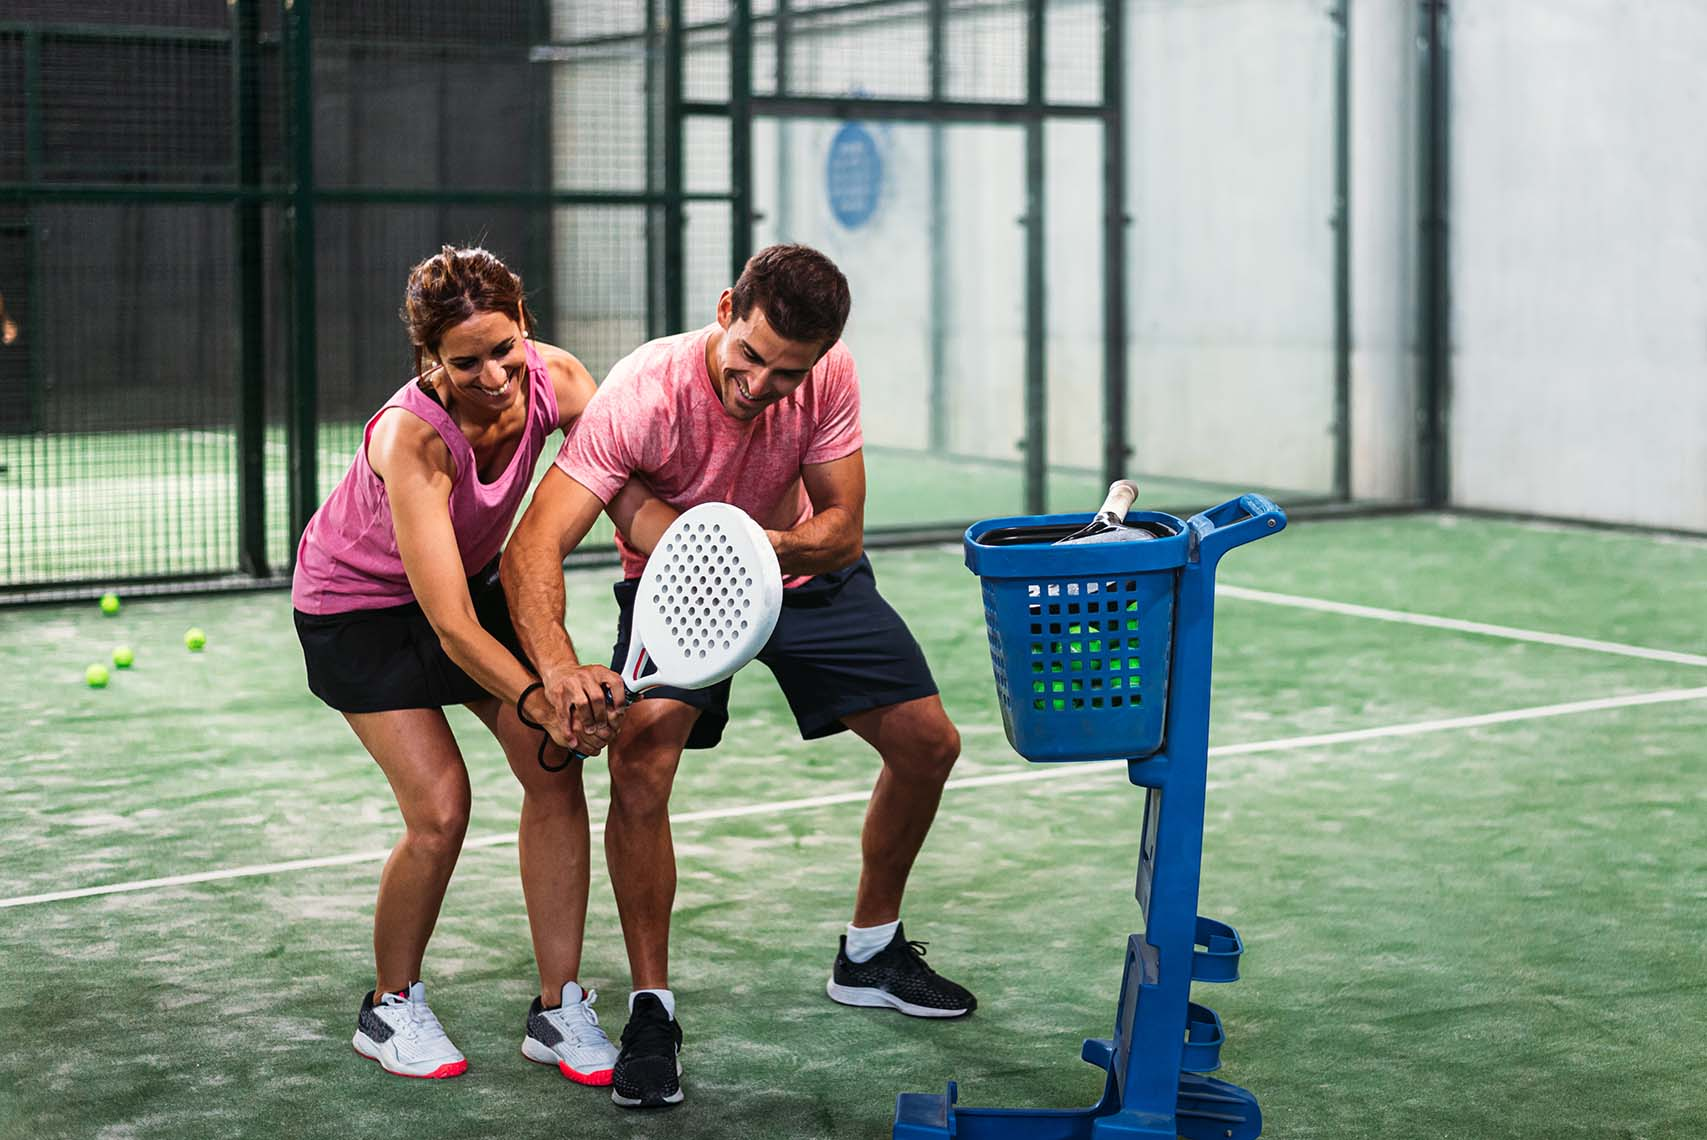 Monitor teaching padel class to woman